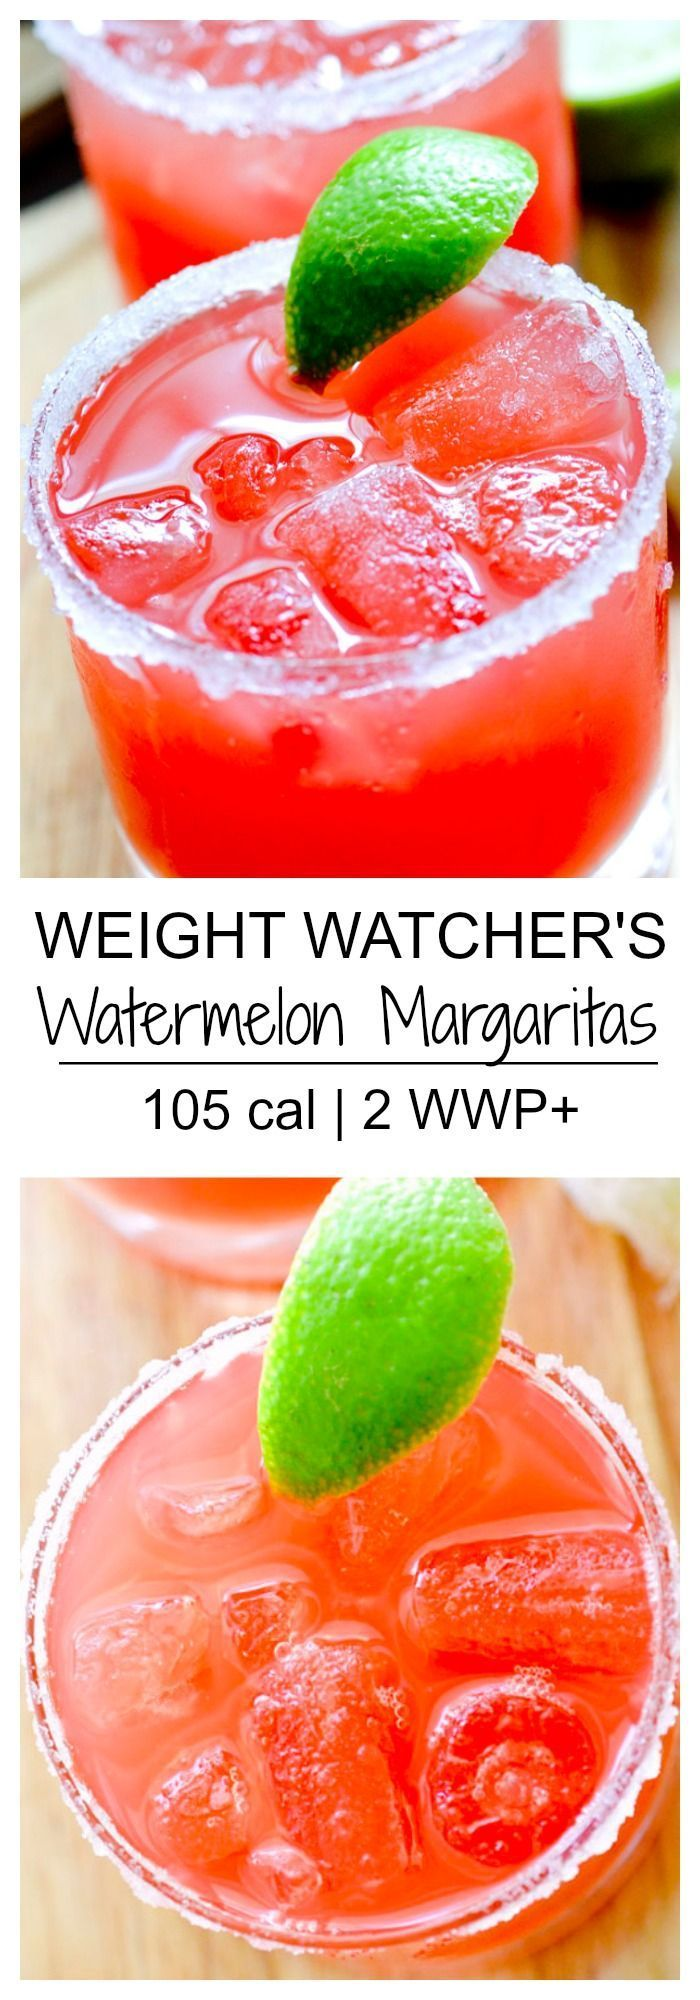 You can definitely have a drink and stay on track with this Watermelon Margarita!